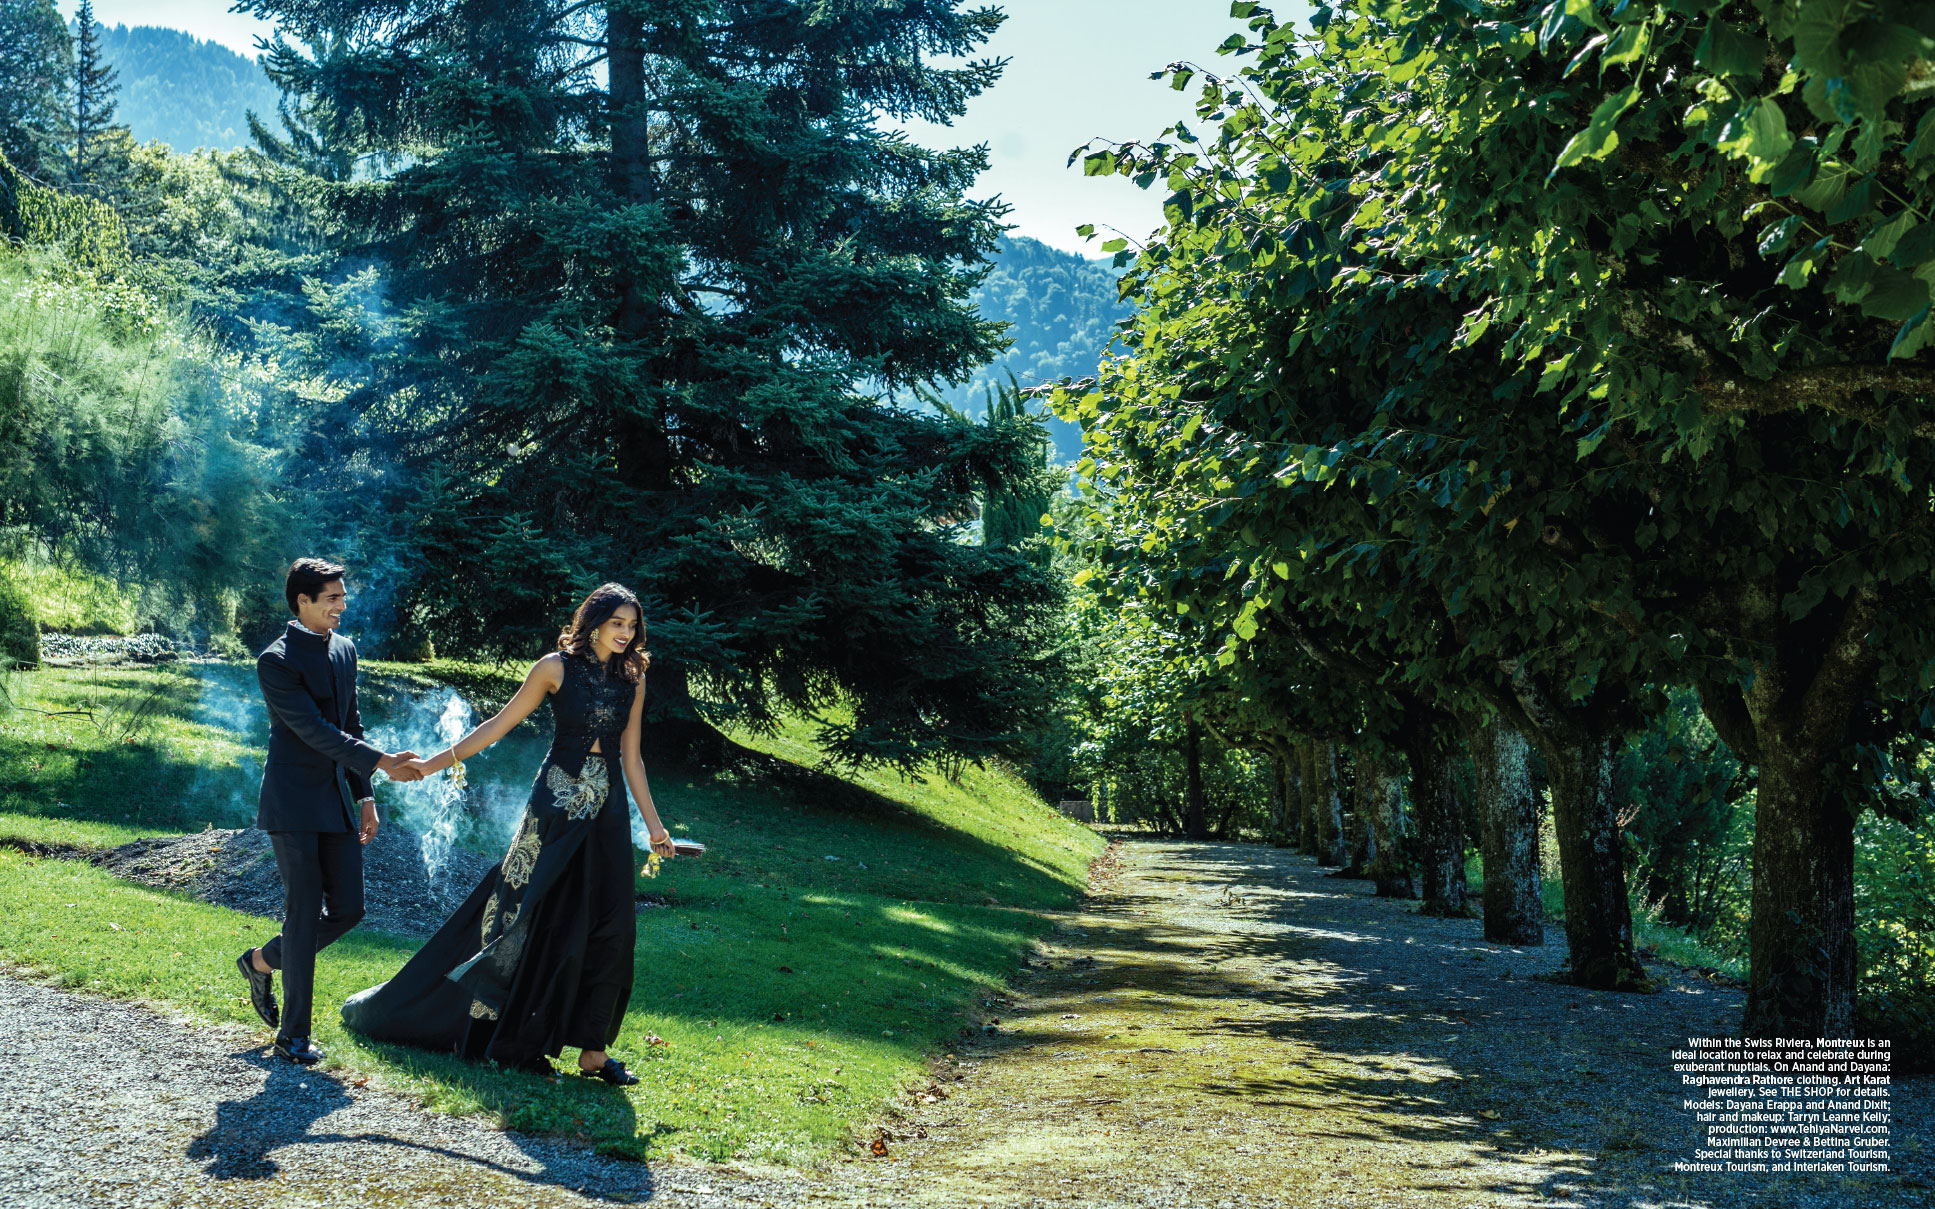 Switzerland Weddings - couple in beautiful Swiss outdoor venuie